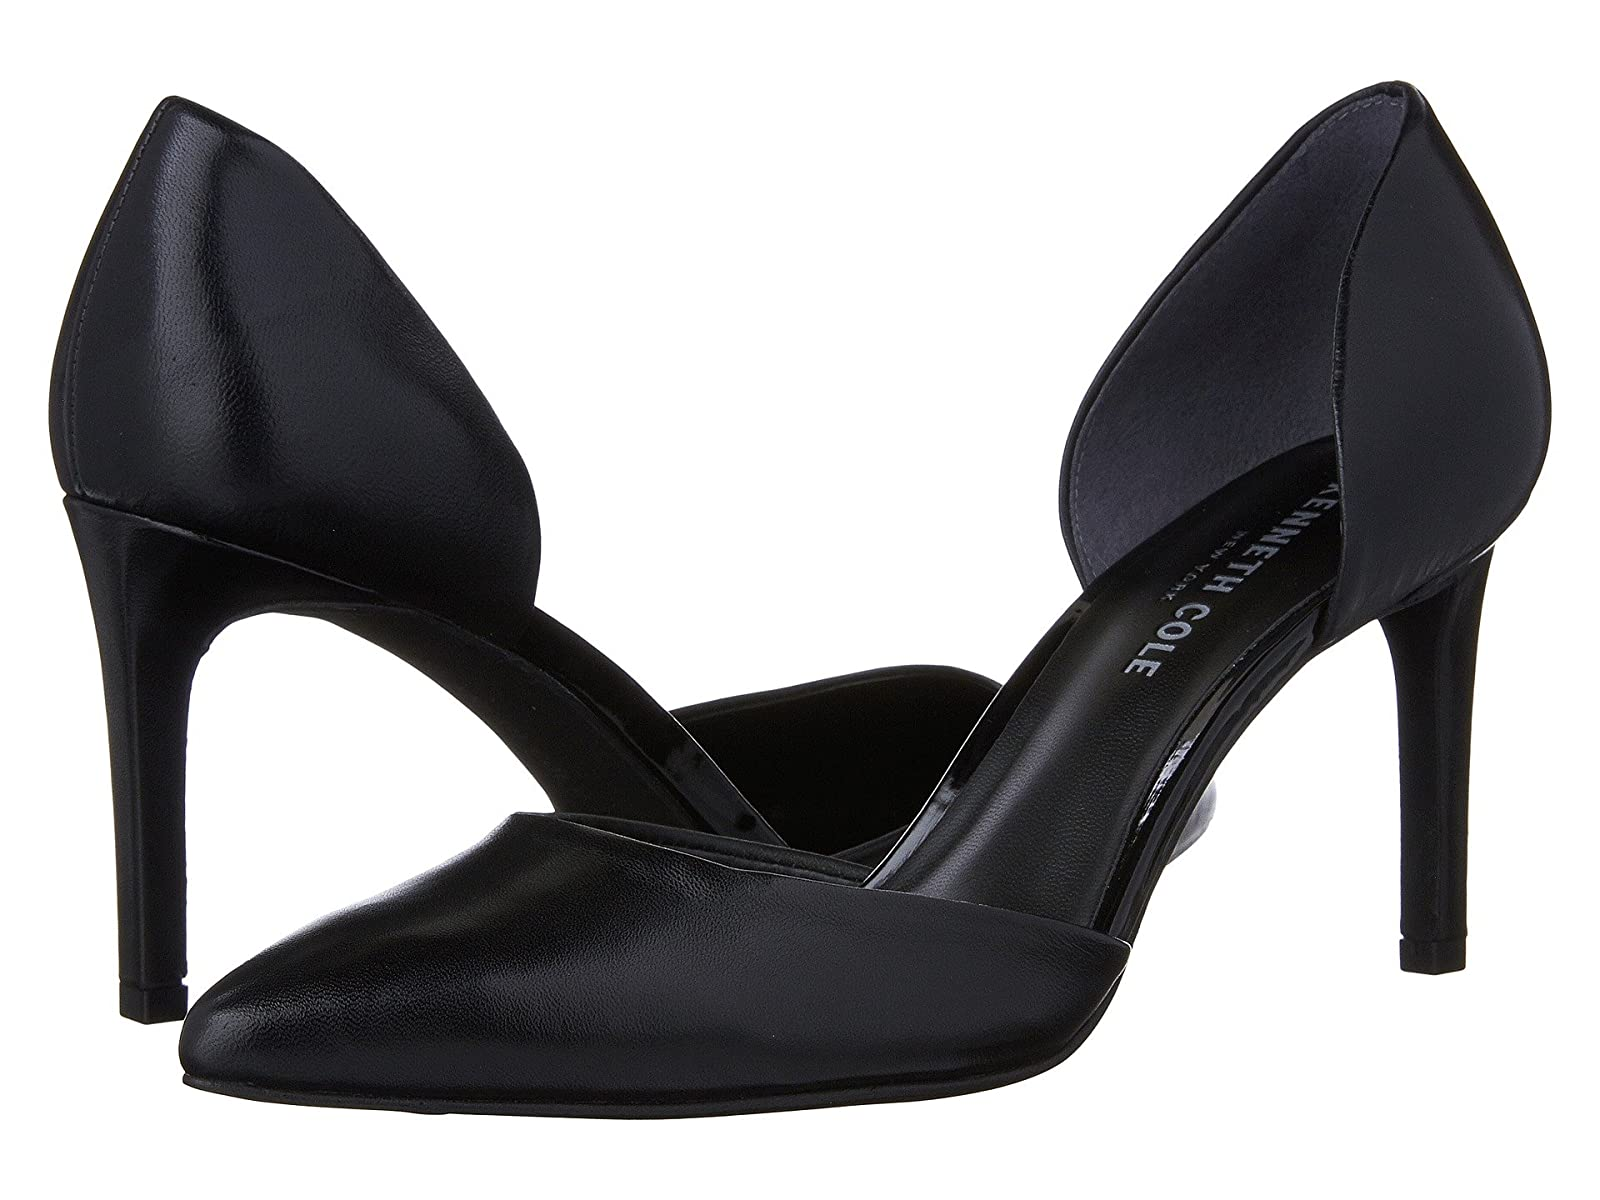 Kenneth Cole New York GemCheap and distinctive eye-catching shoes